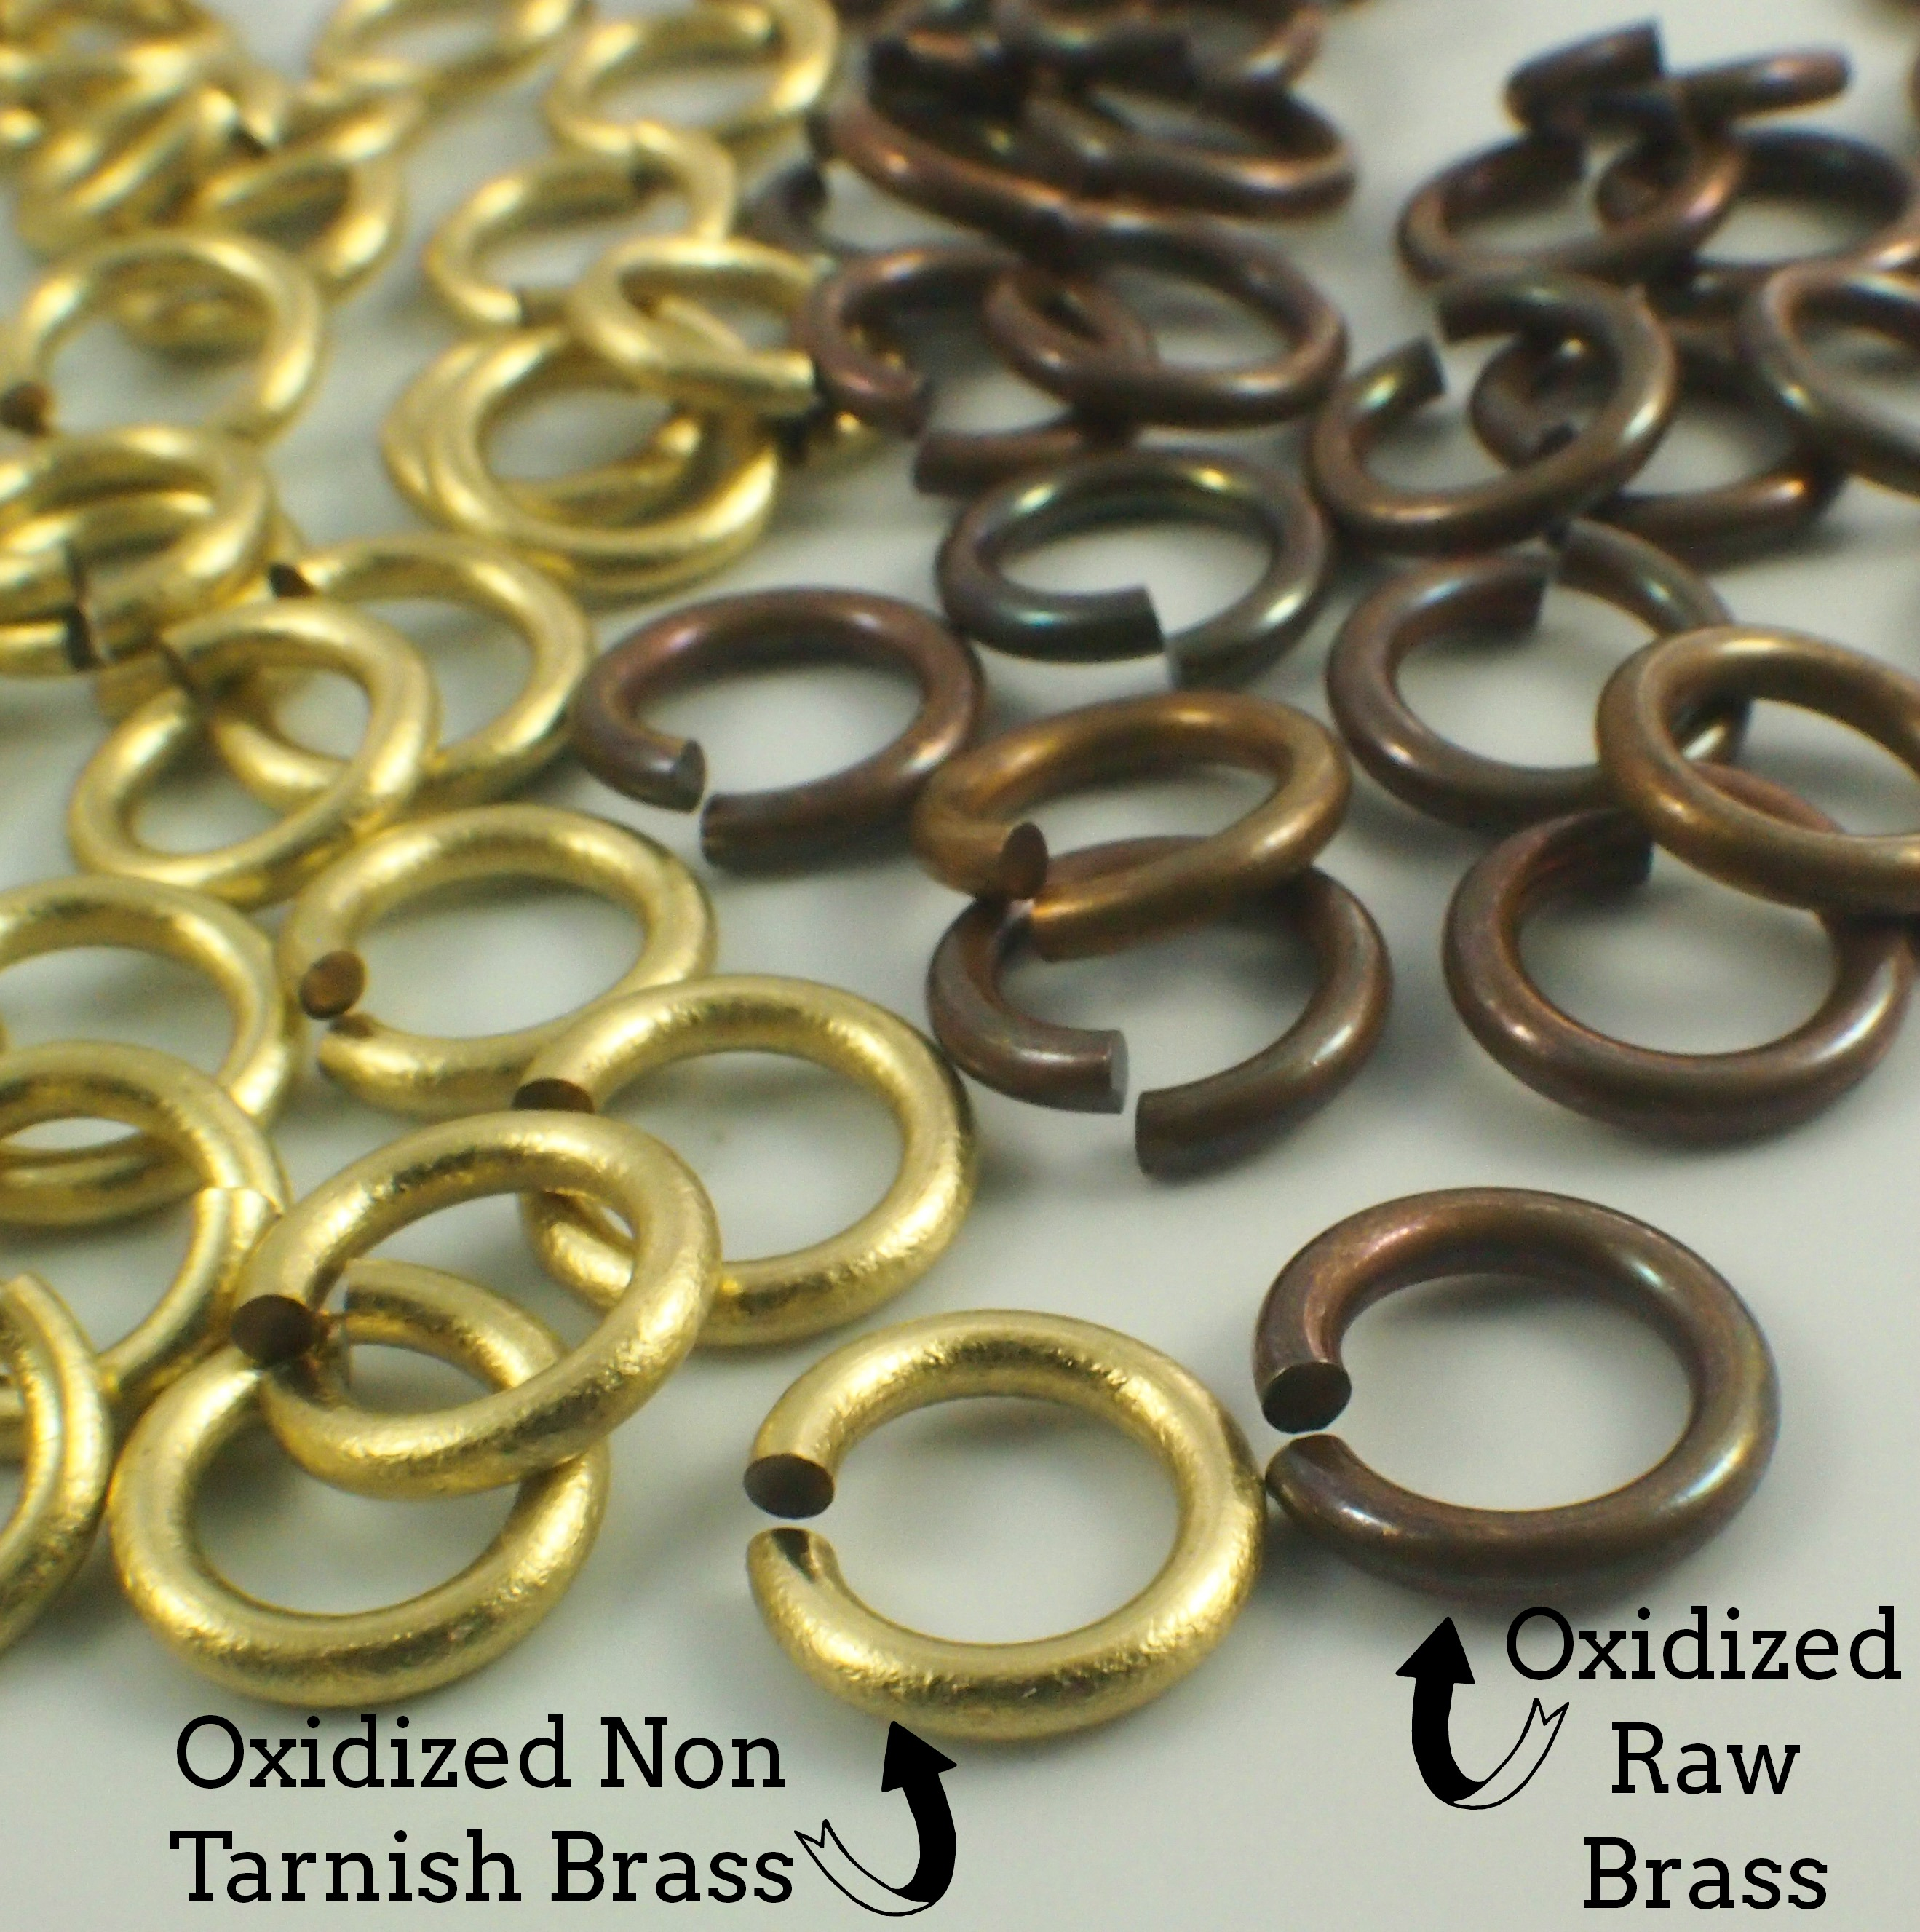 Non-Tarnish Brass vs Raw Brass – Unkamen Supplies Blog